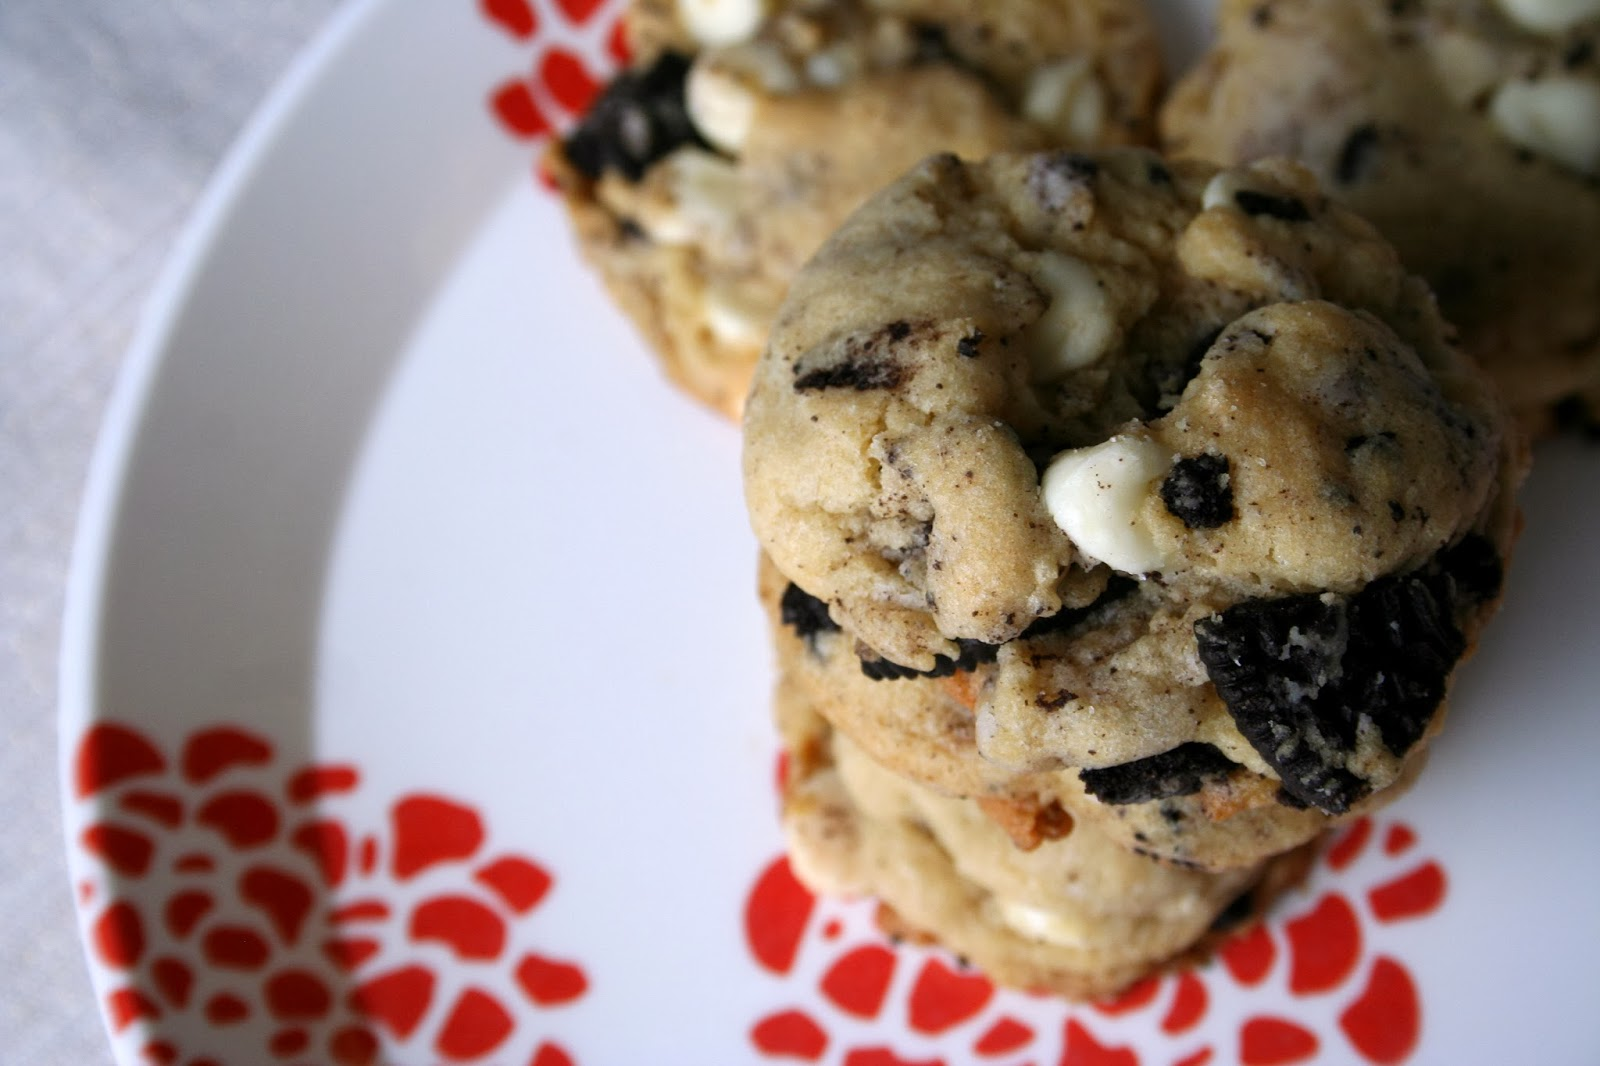 For the Love of Food: Oreo White Chocolate Pudding Cookies